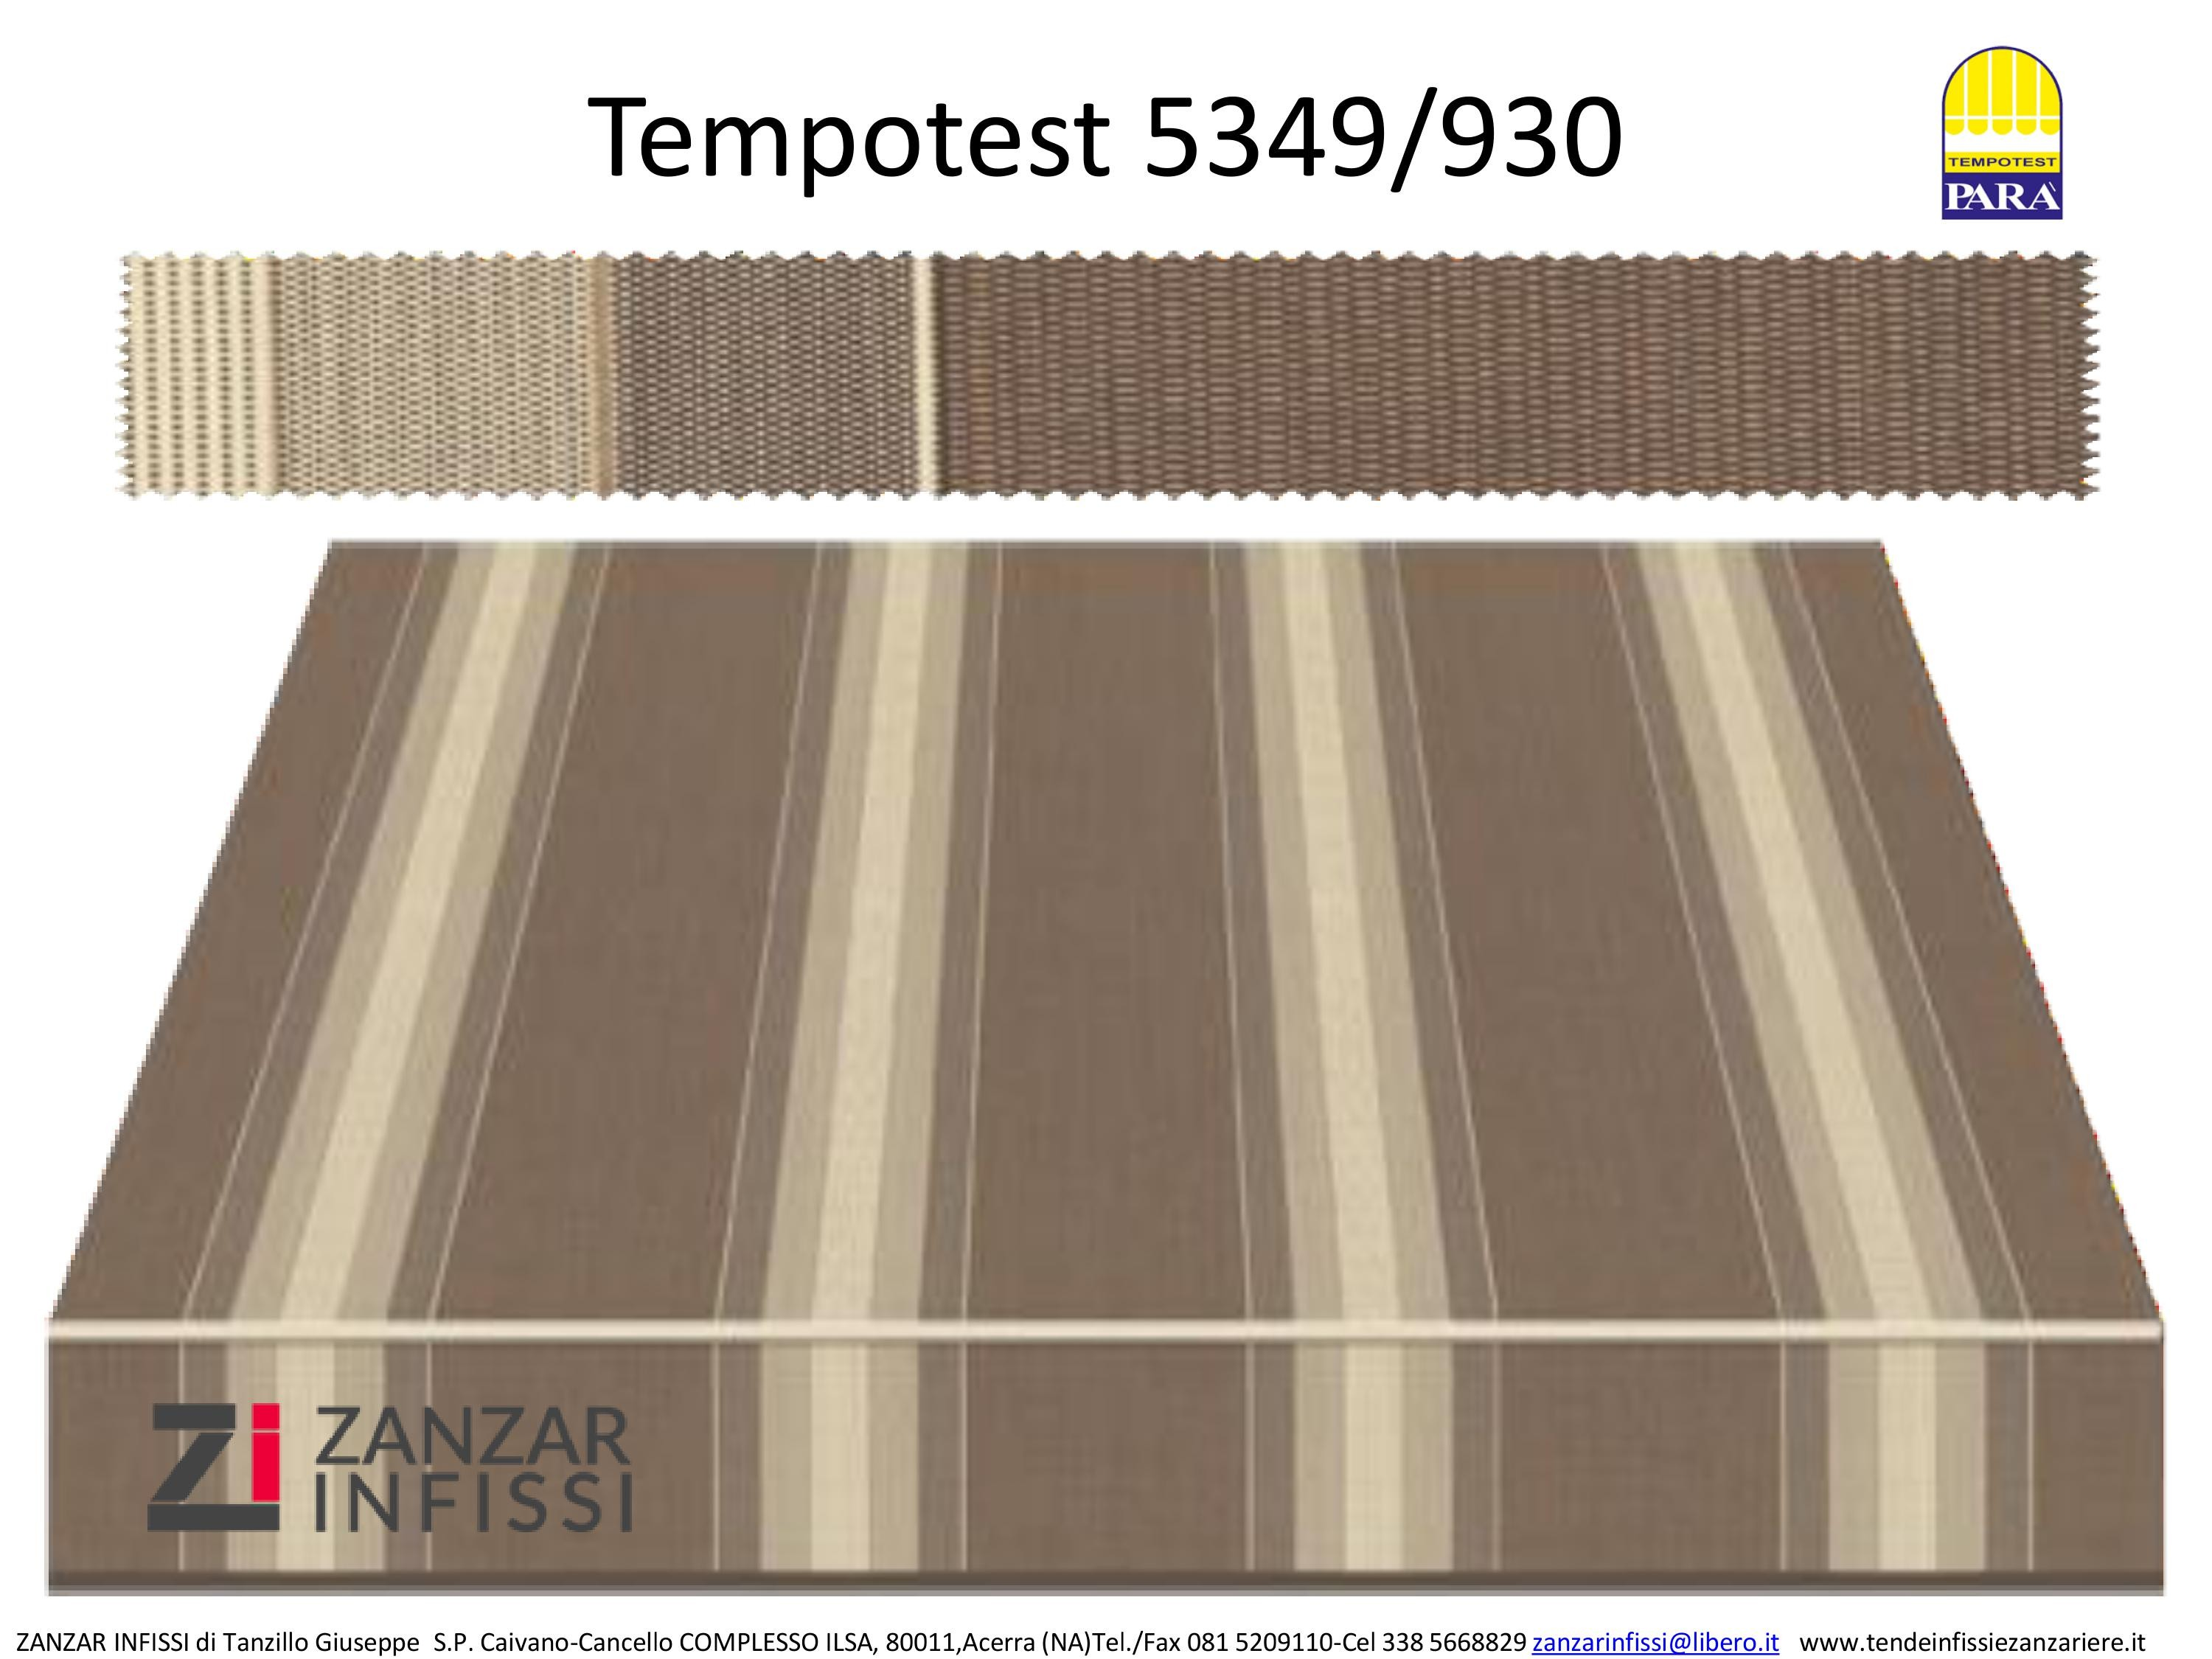 Tempotest 5349/930